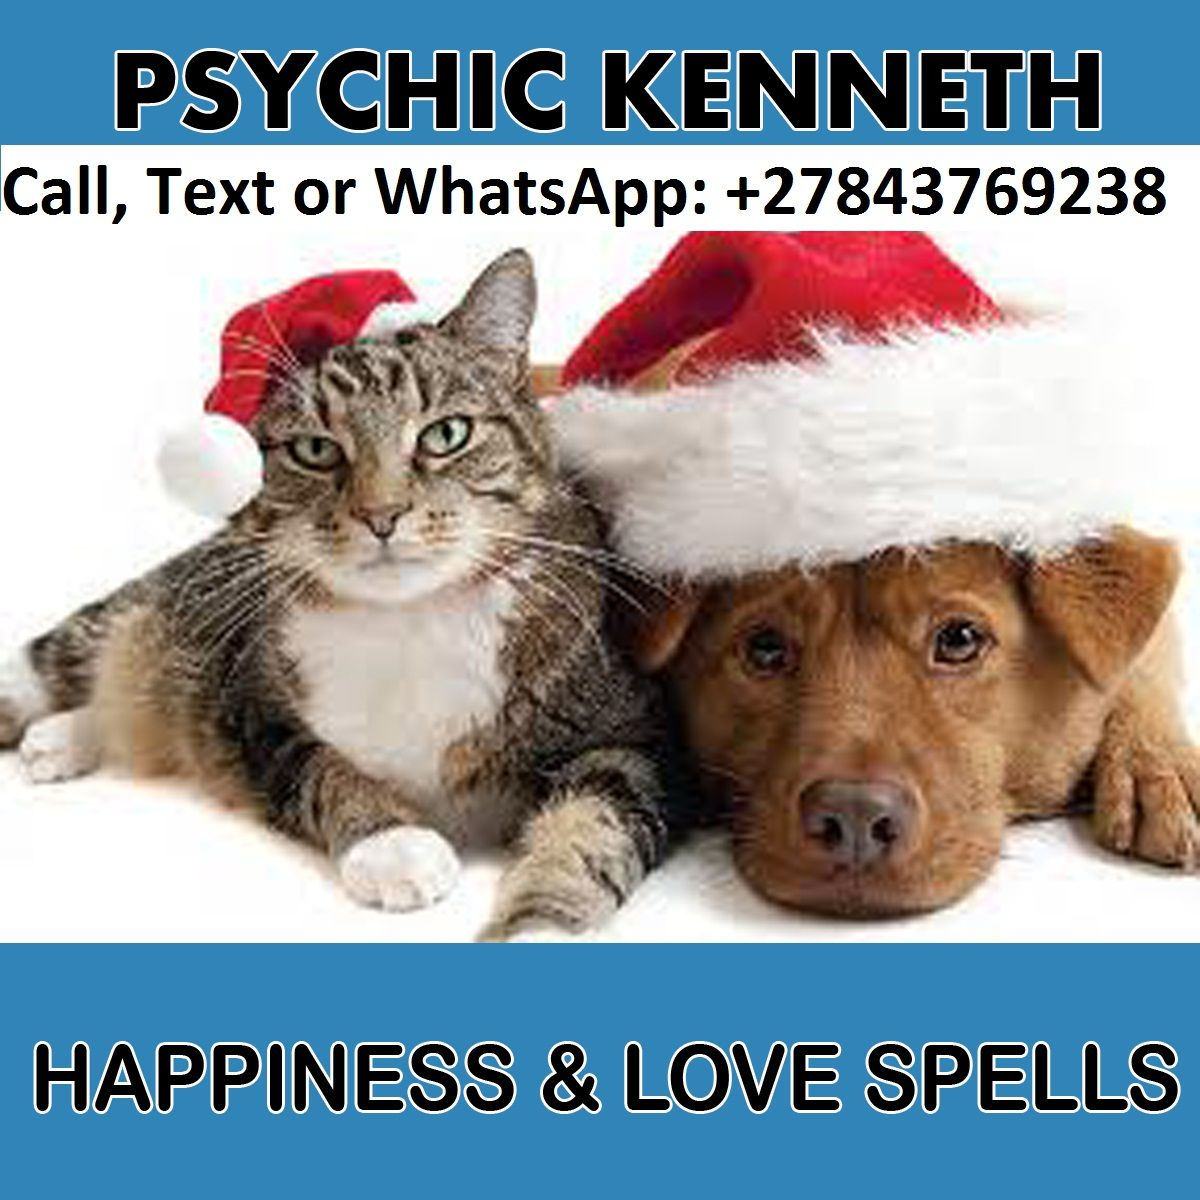 South Africa Best Love Spells | How to get Psychic readings on careers Call | WhatsApp: +27843769238